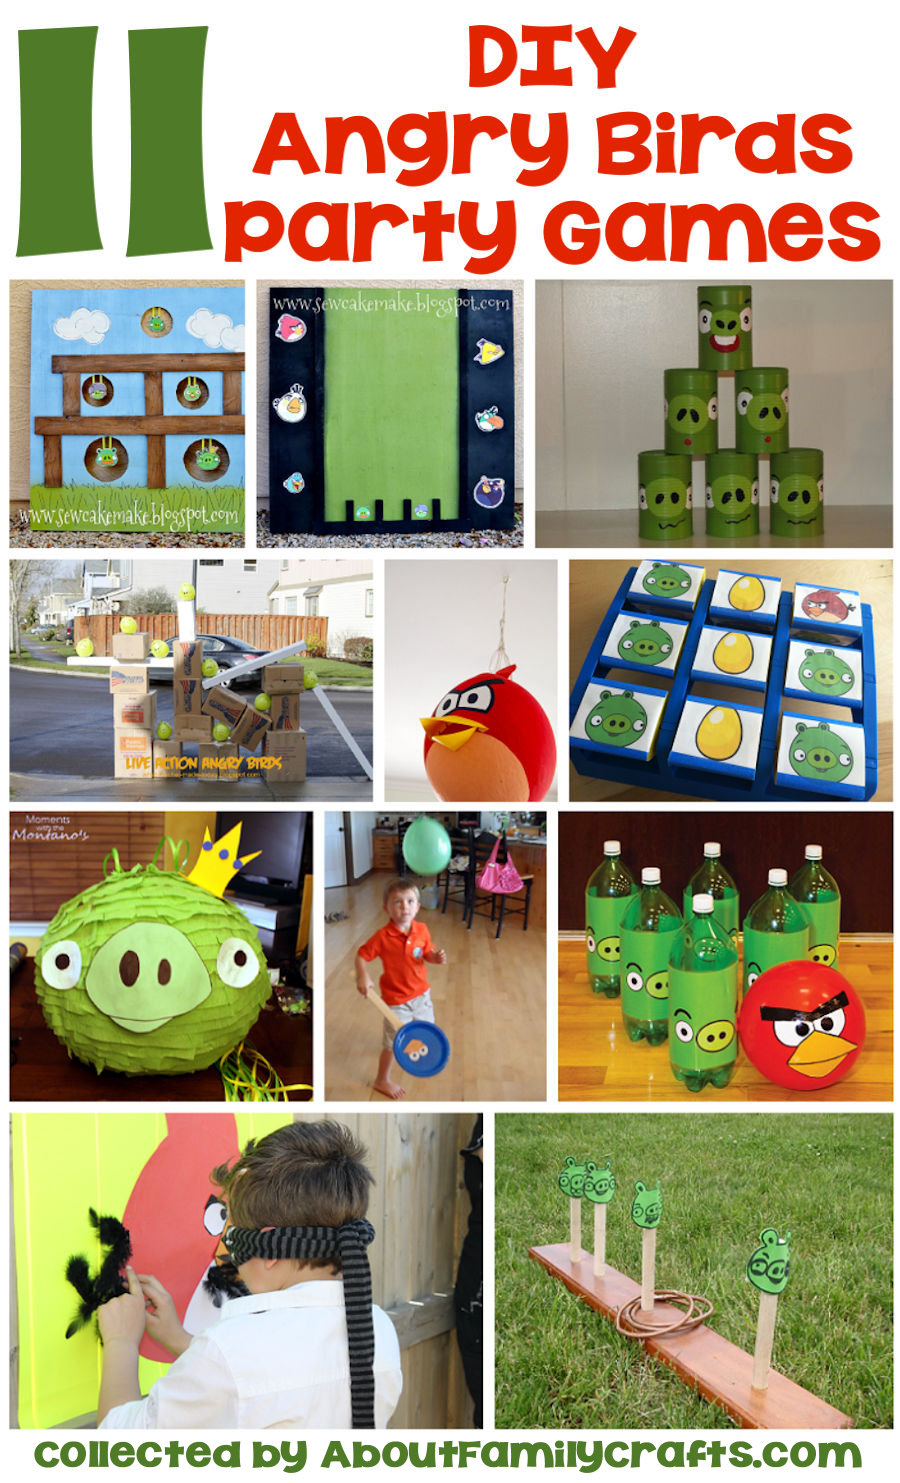 65 diy angry birds party ideas about family crafts for Backyard party decoration crossword